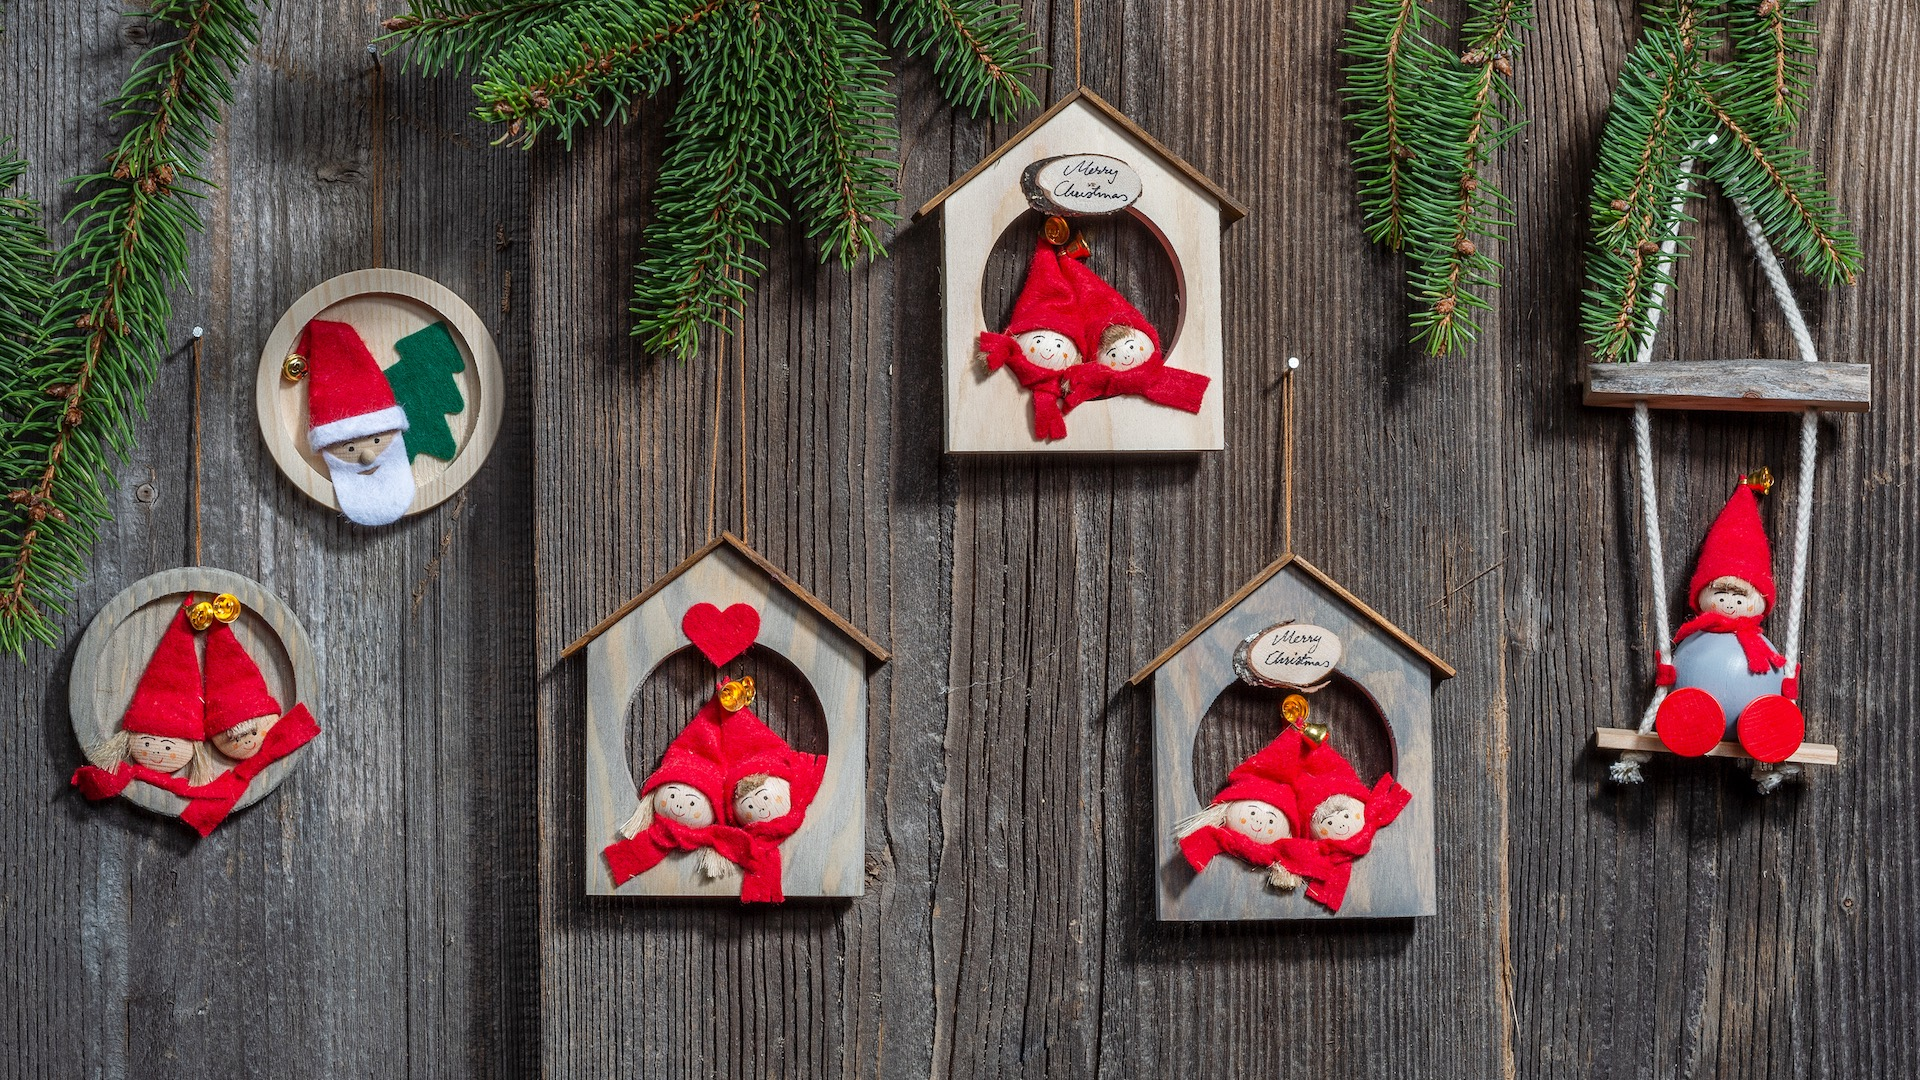 Handcrafted Hanging Christmas Decorations